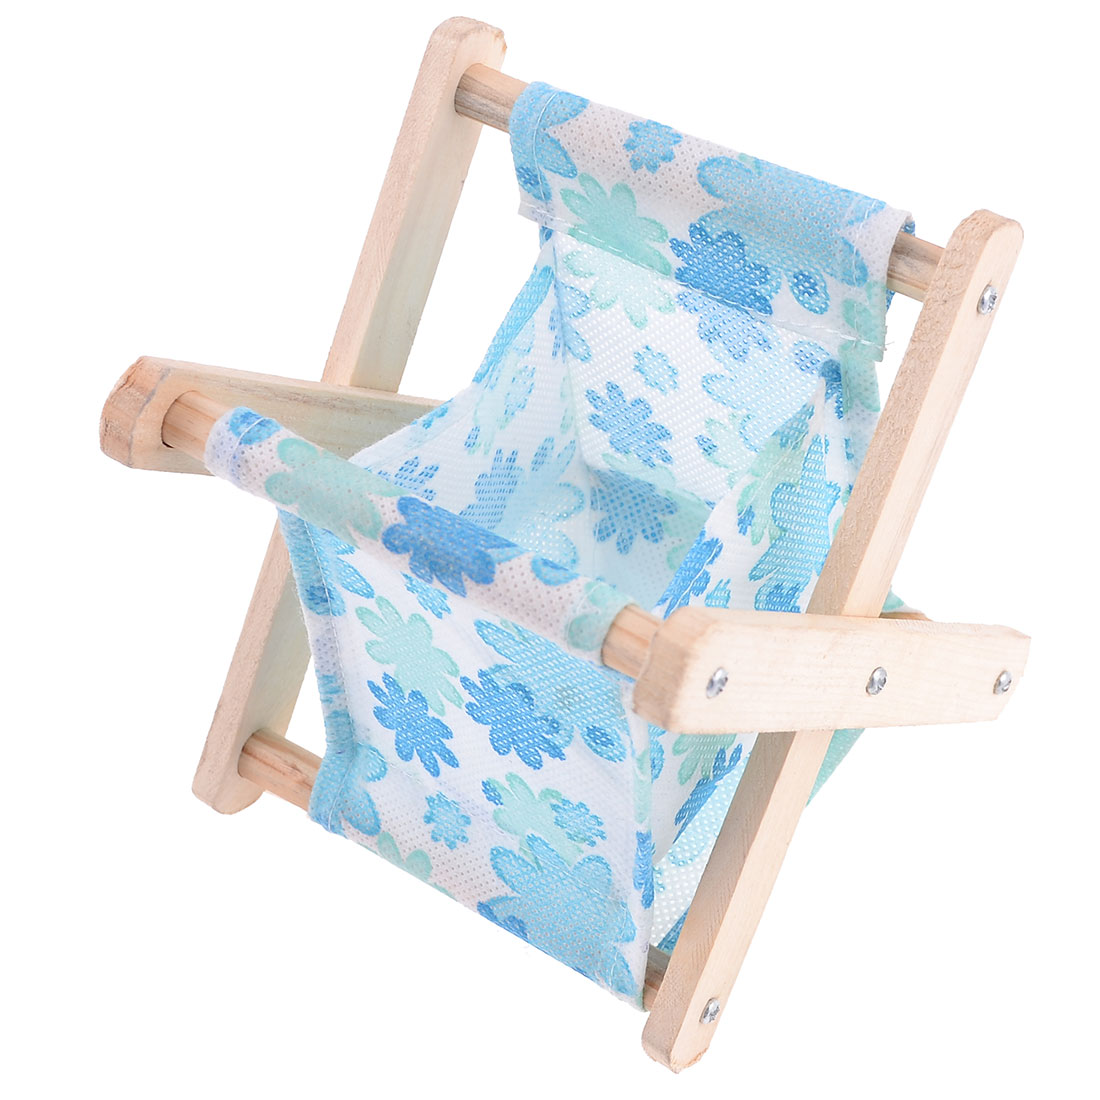 Wood Stand Flower Pattern Mini Folding Storage Bag Basket Hoder Light Blue